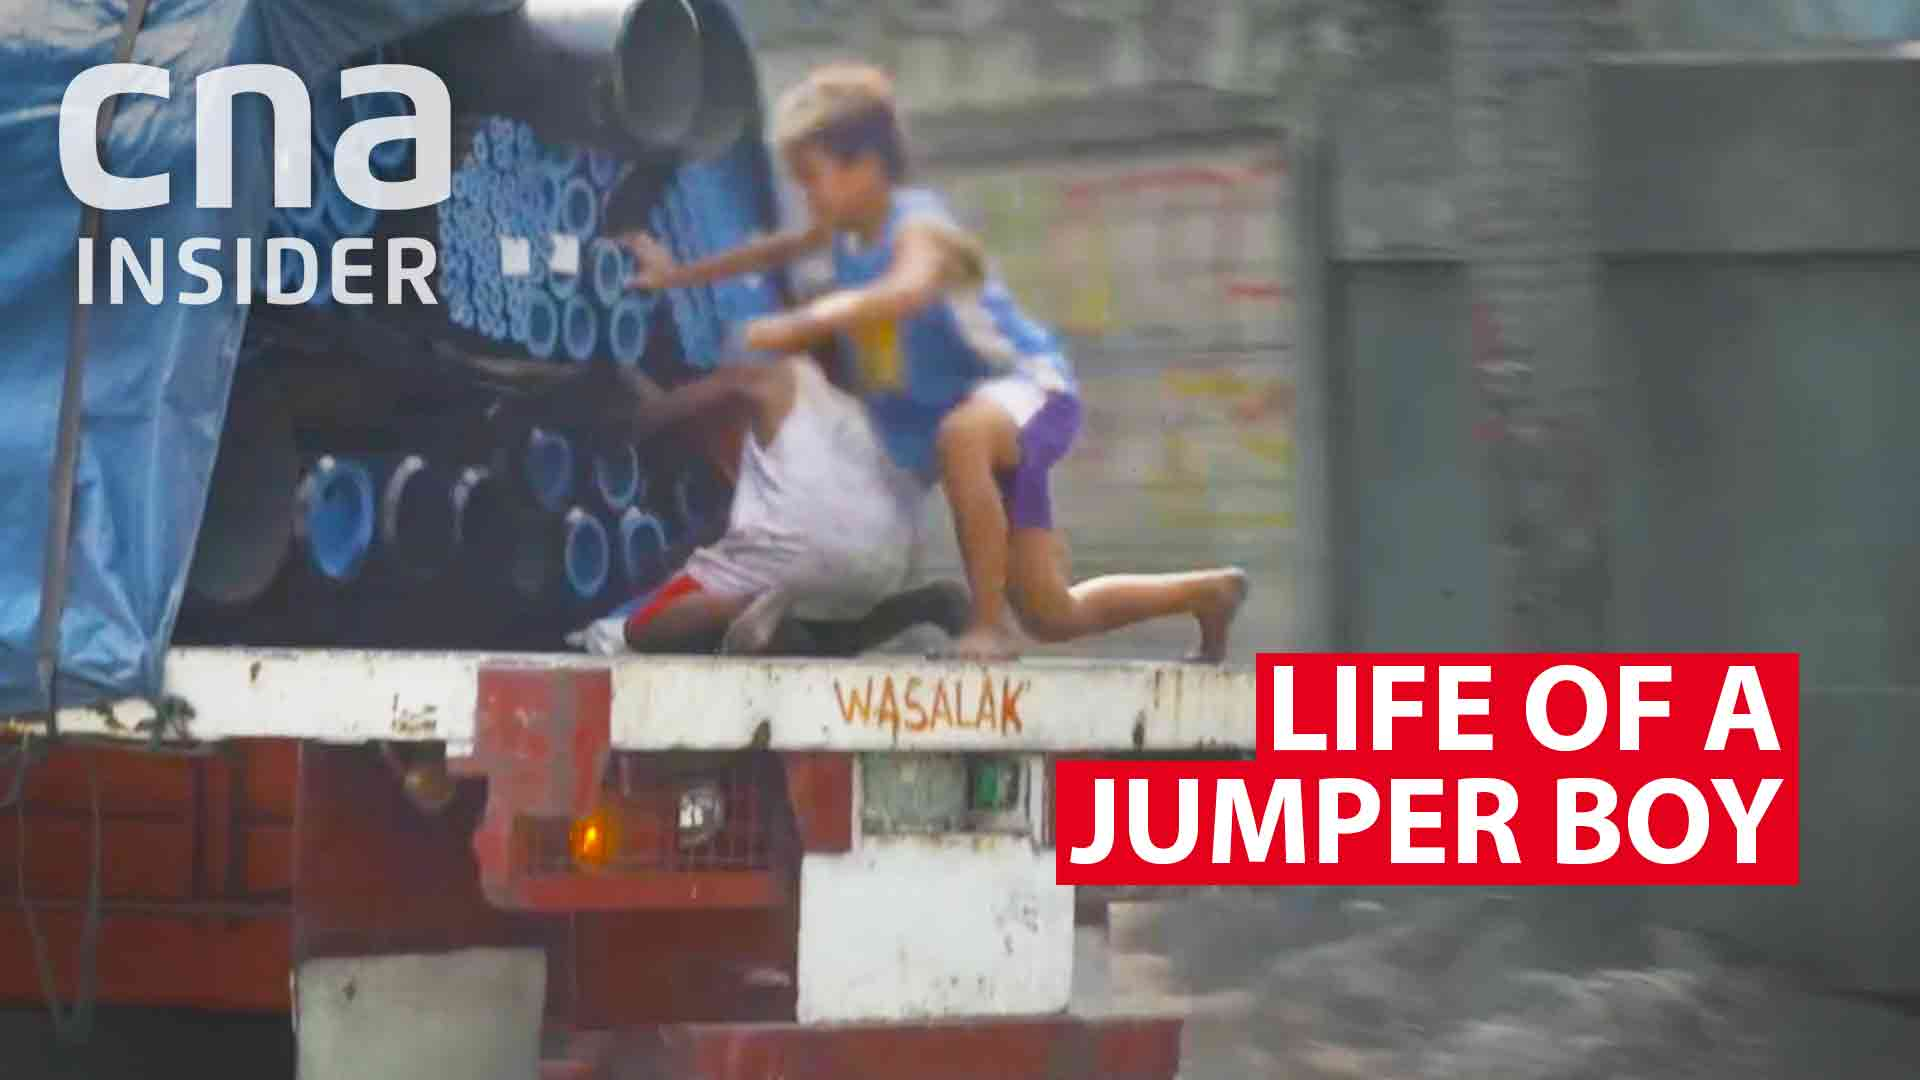 Life of a jumper boy